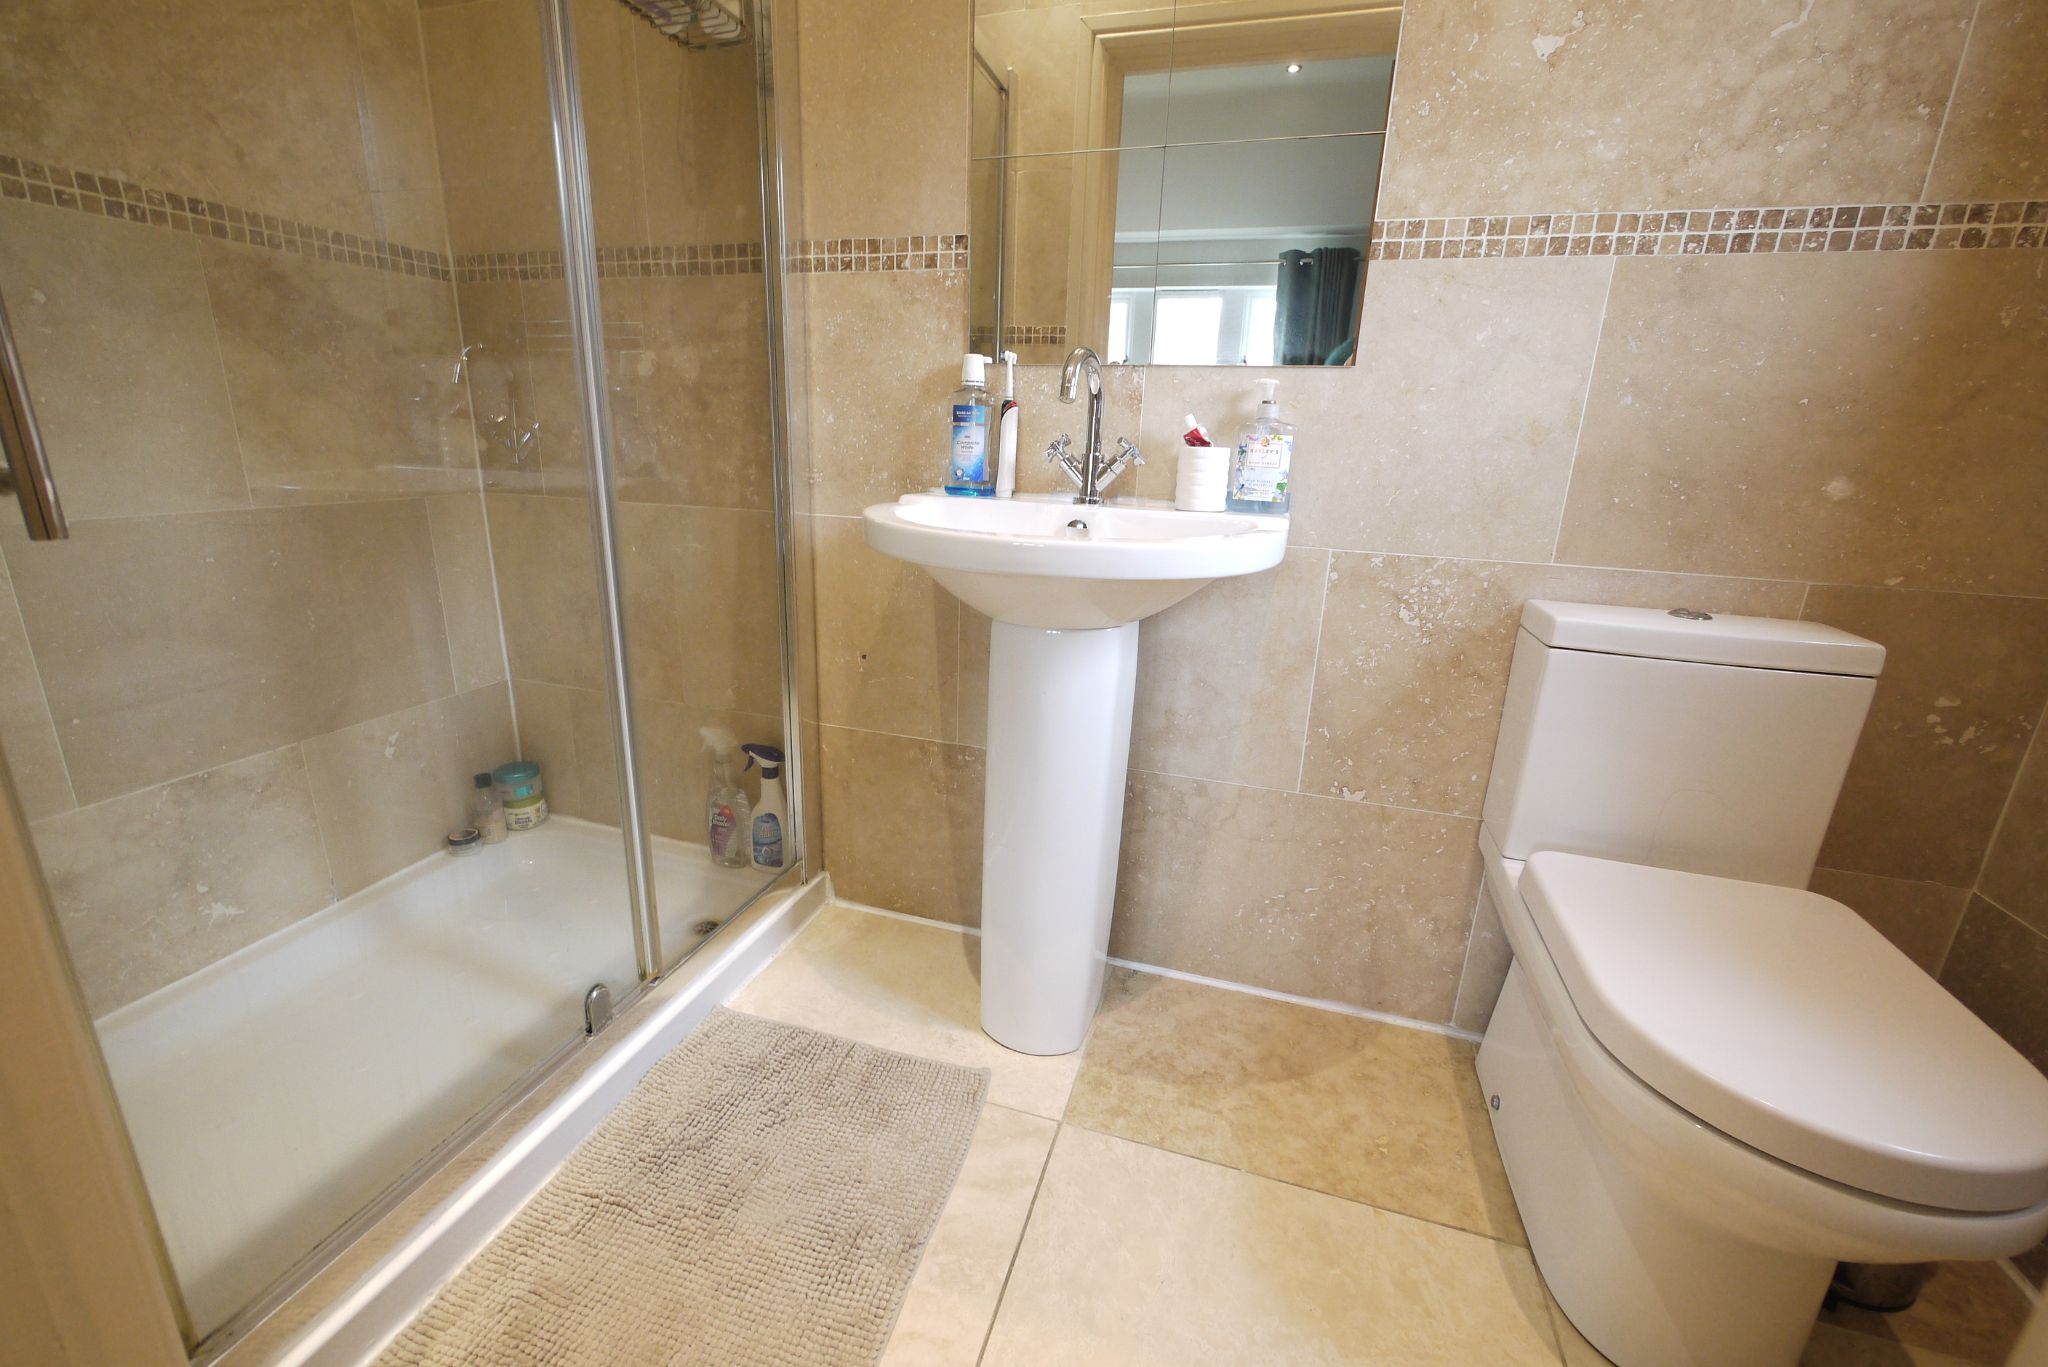 4 bedroom detached house For Sale in Brighouse - Photograph 18.